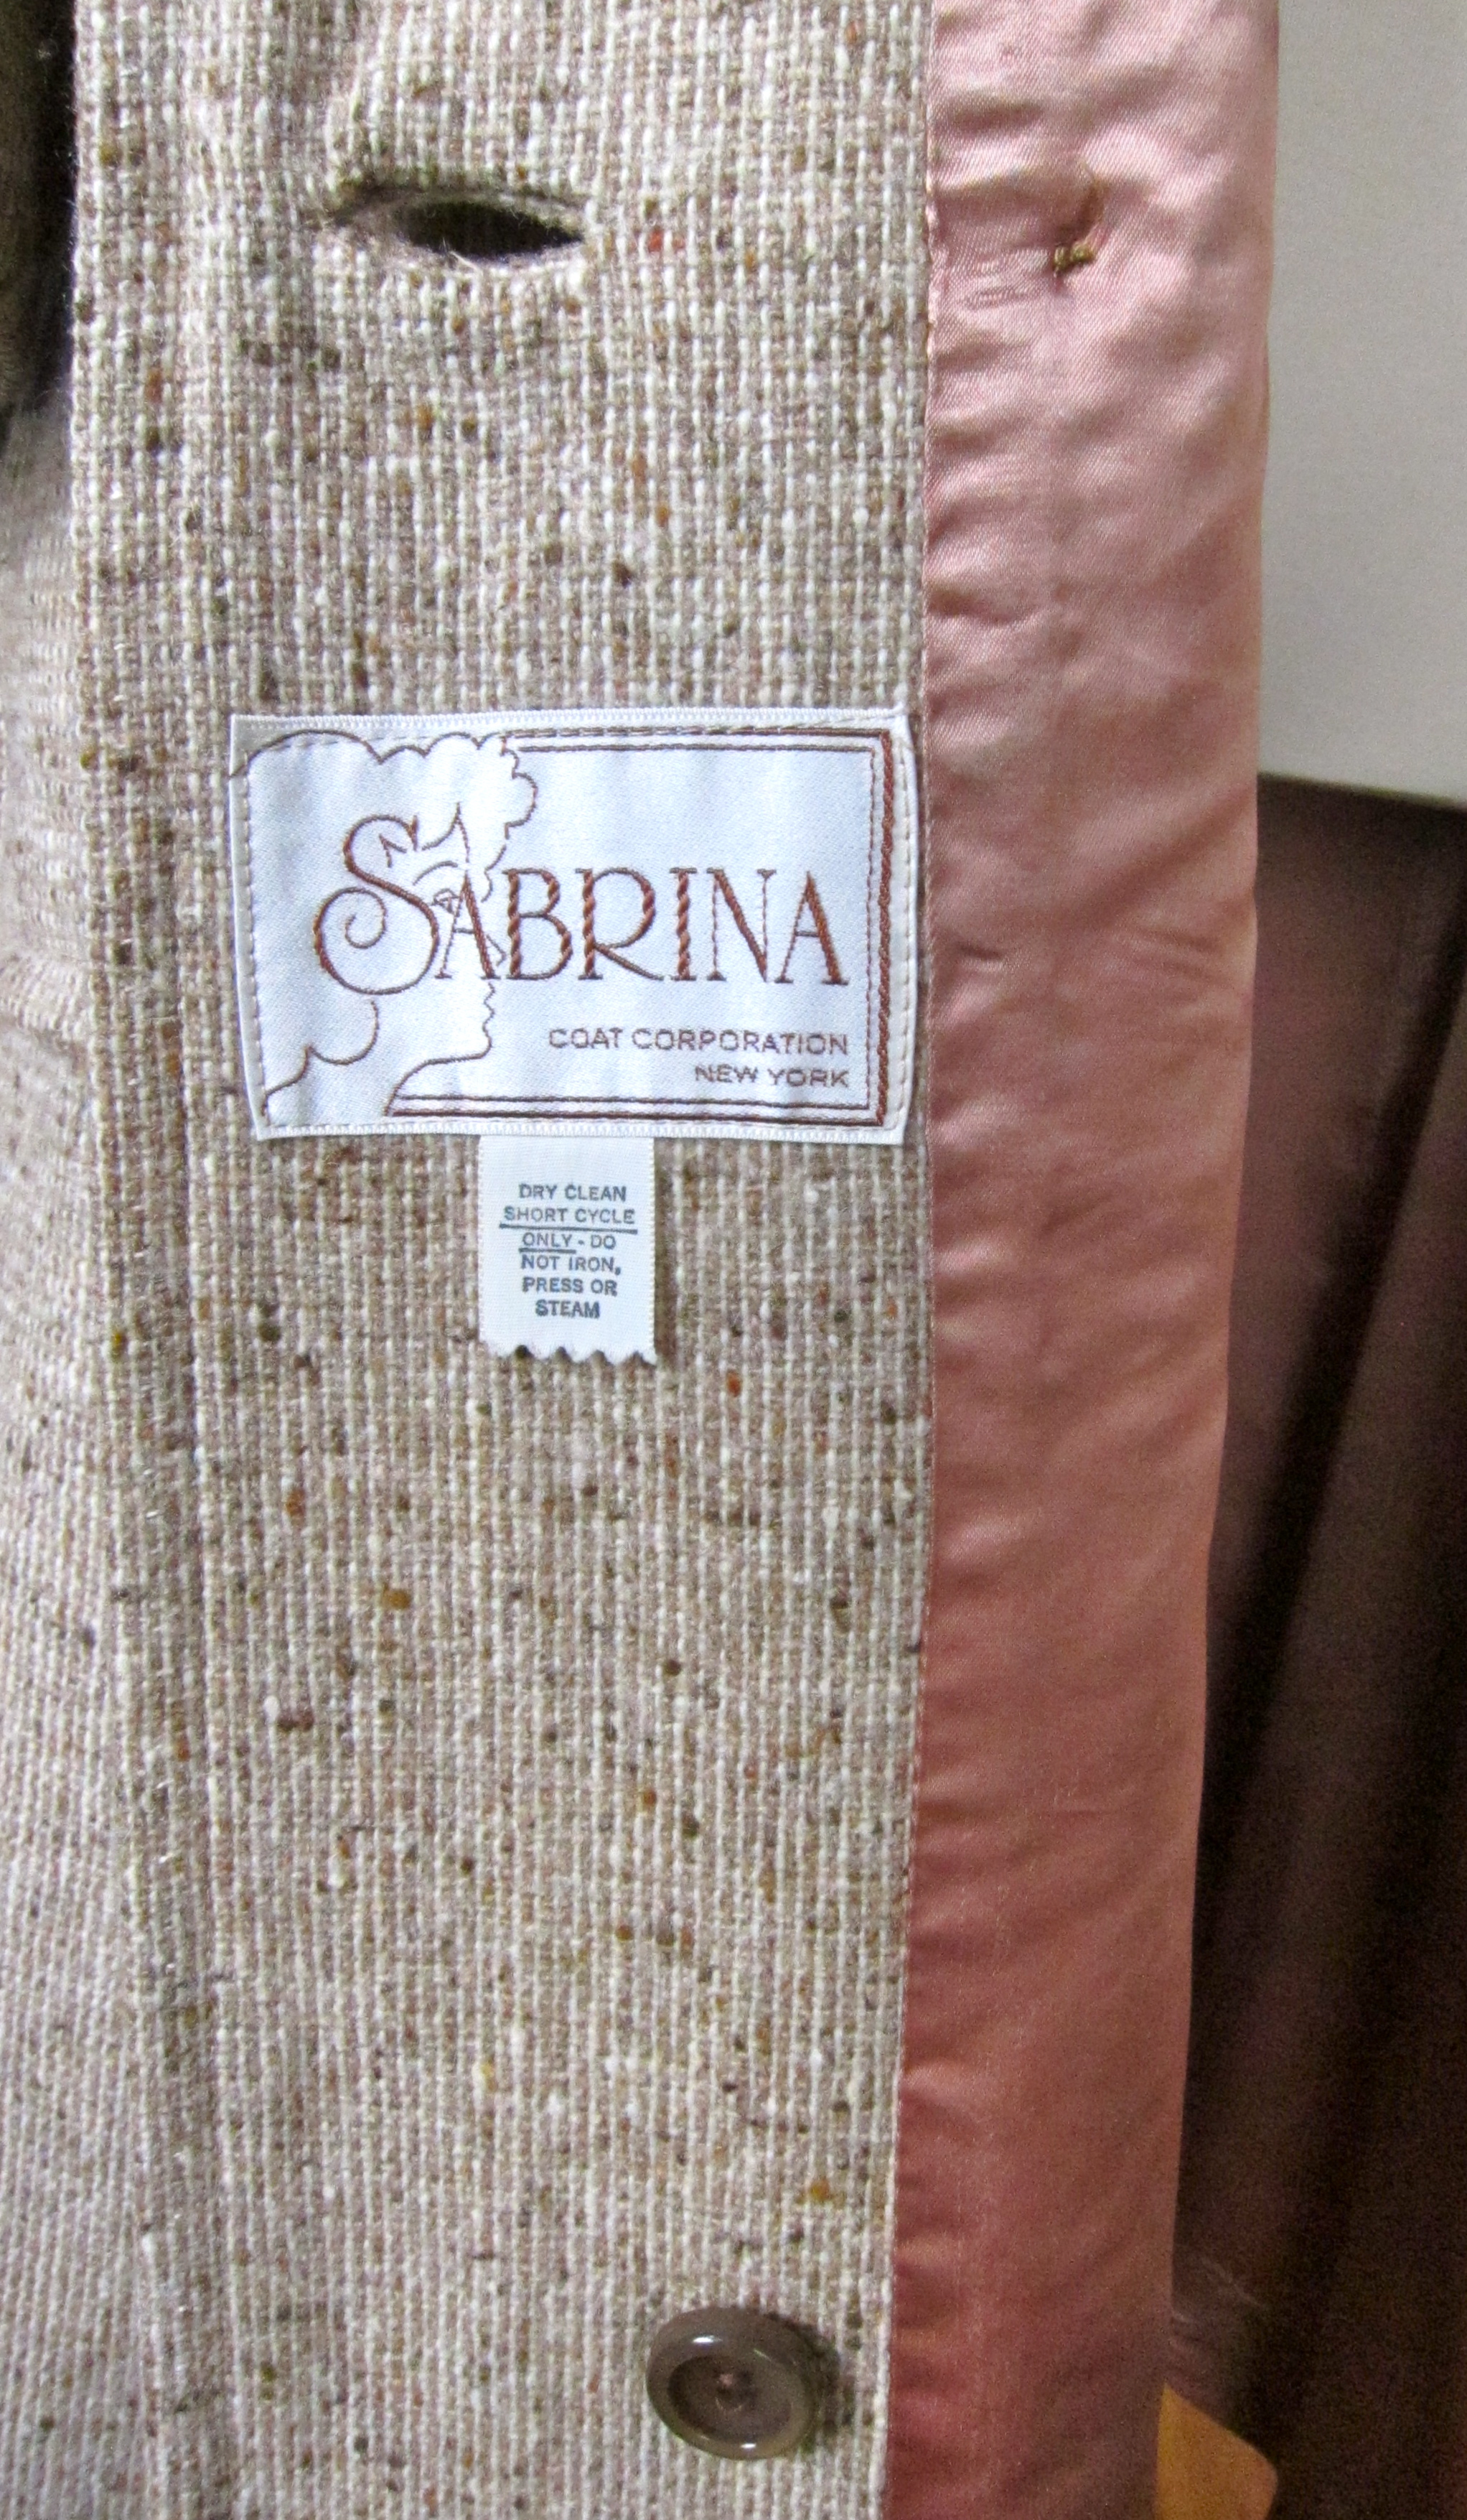 3c129af5a2c7 An Extra Replacement Button is Sewn Inside the Coat Just In Case You Lose  One. Also Note the Beautiful Big Sabrina Coat Corporation Label and the  Still ...